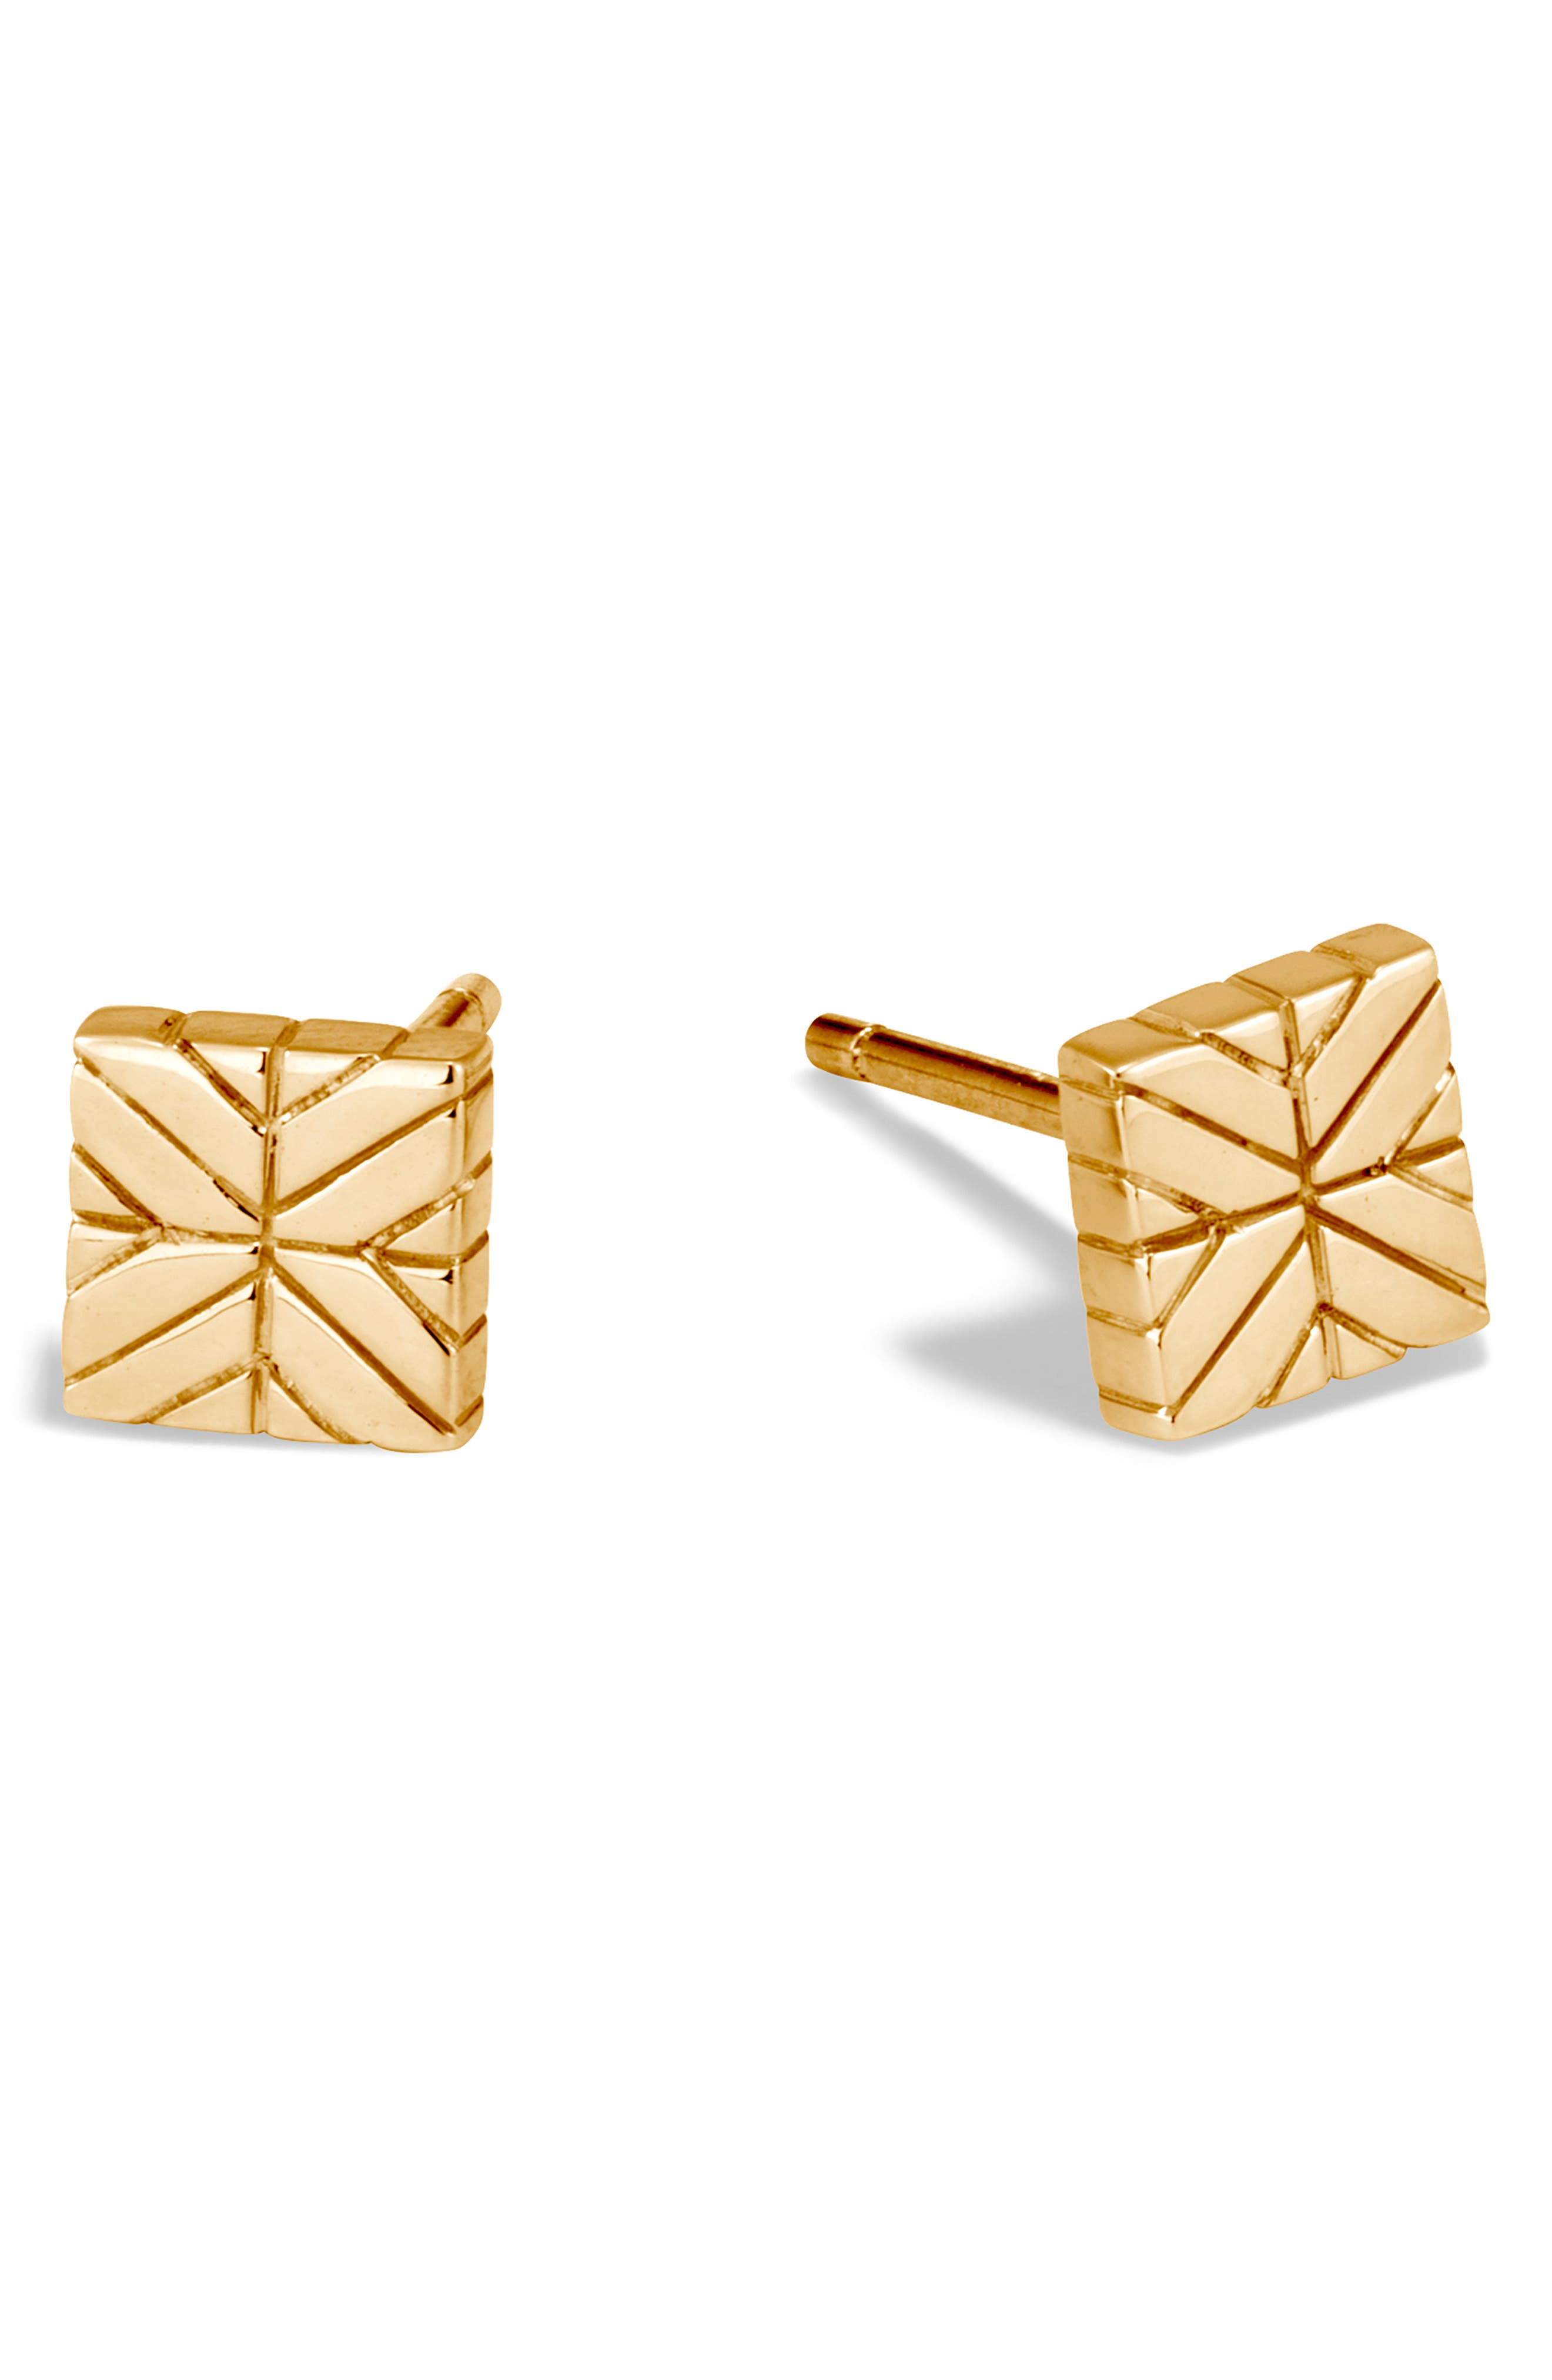 Modern Chain Gold Stud Earrings,                         Main,                         color, GOLD